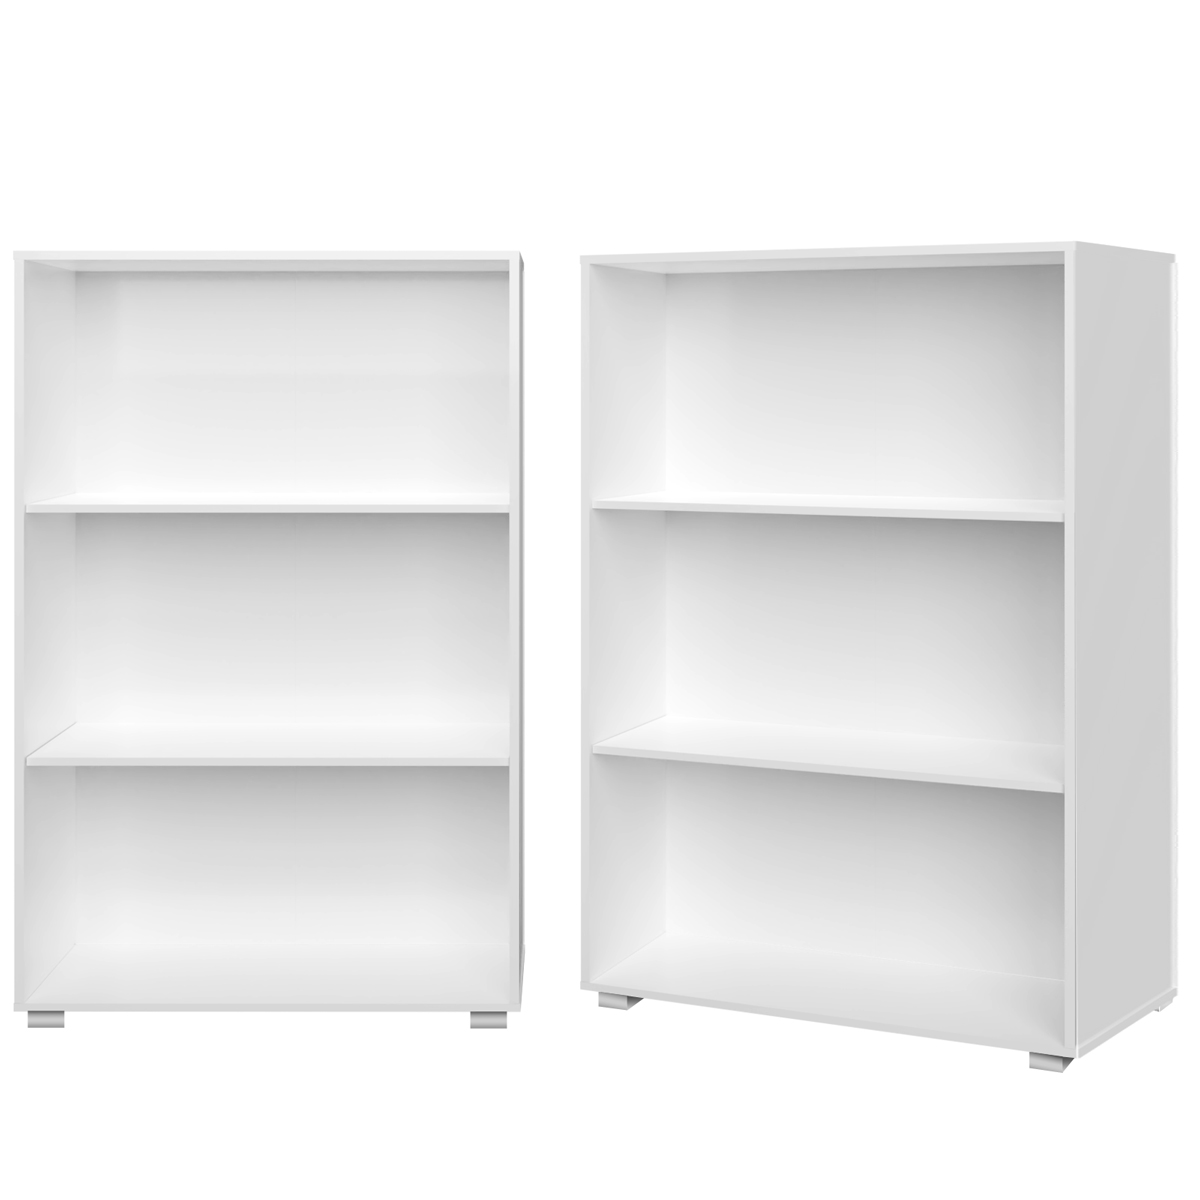 2 Pieces Set Bookcase White Shelves Cupboard Office MDF